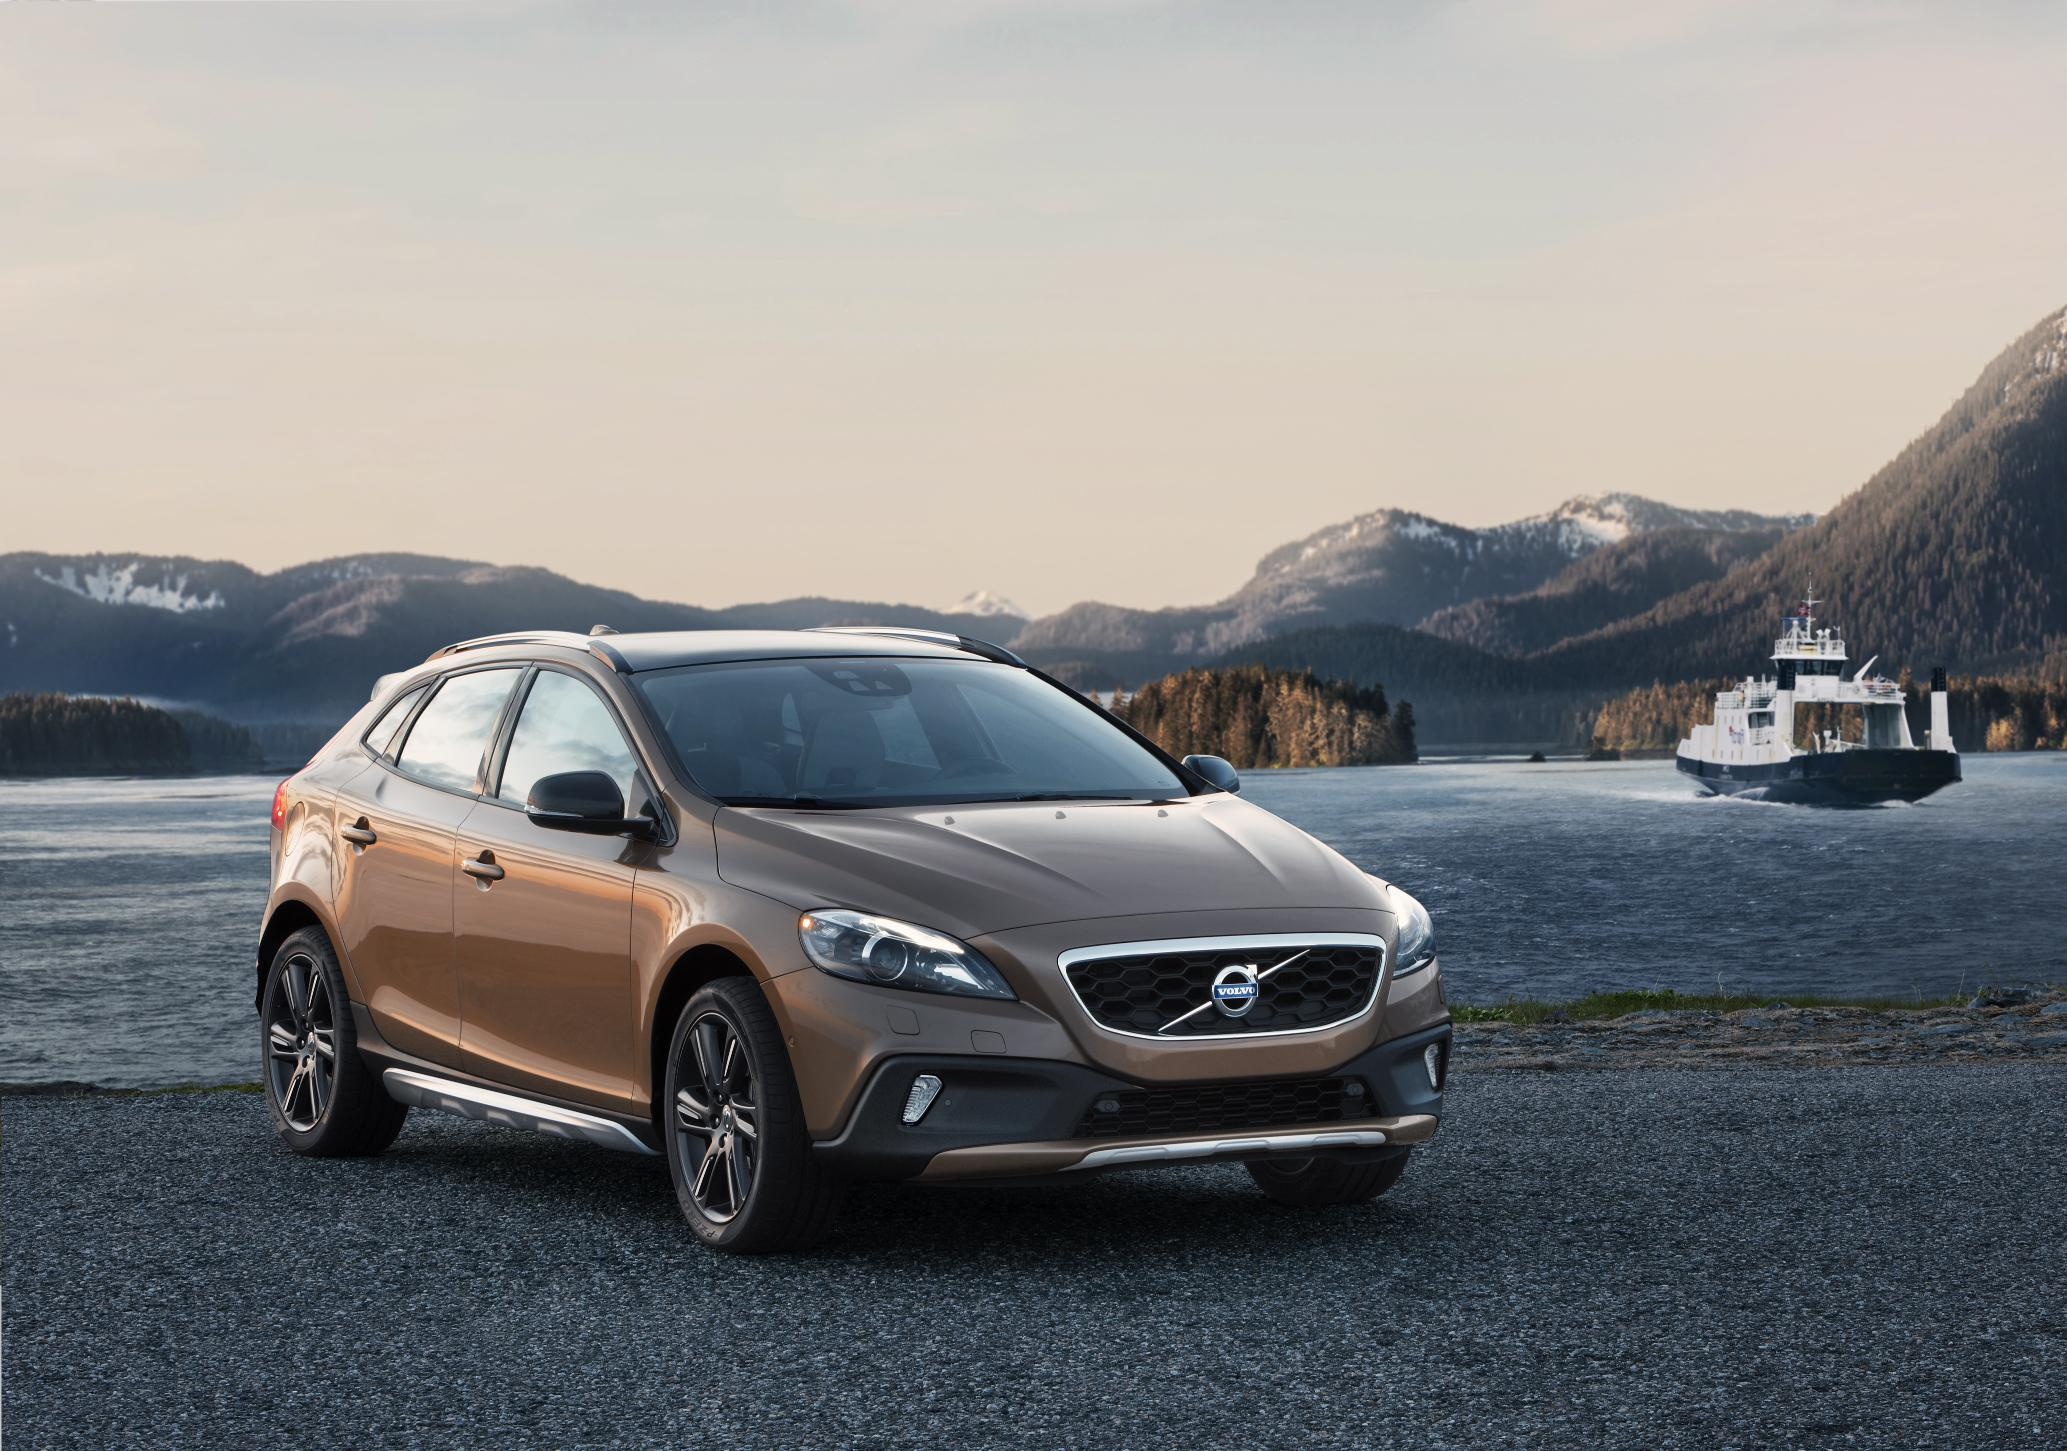 volvo lifts up new volvo v40 cross country for the whole world to see w video autoblog. Black Bedroom Furniture Sets. Home Design Ideas